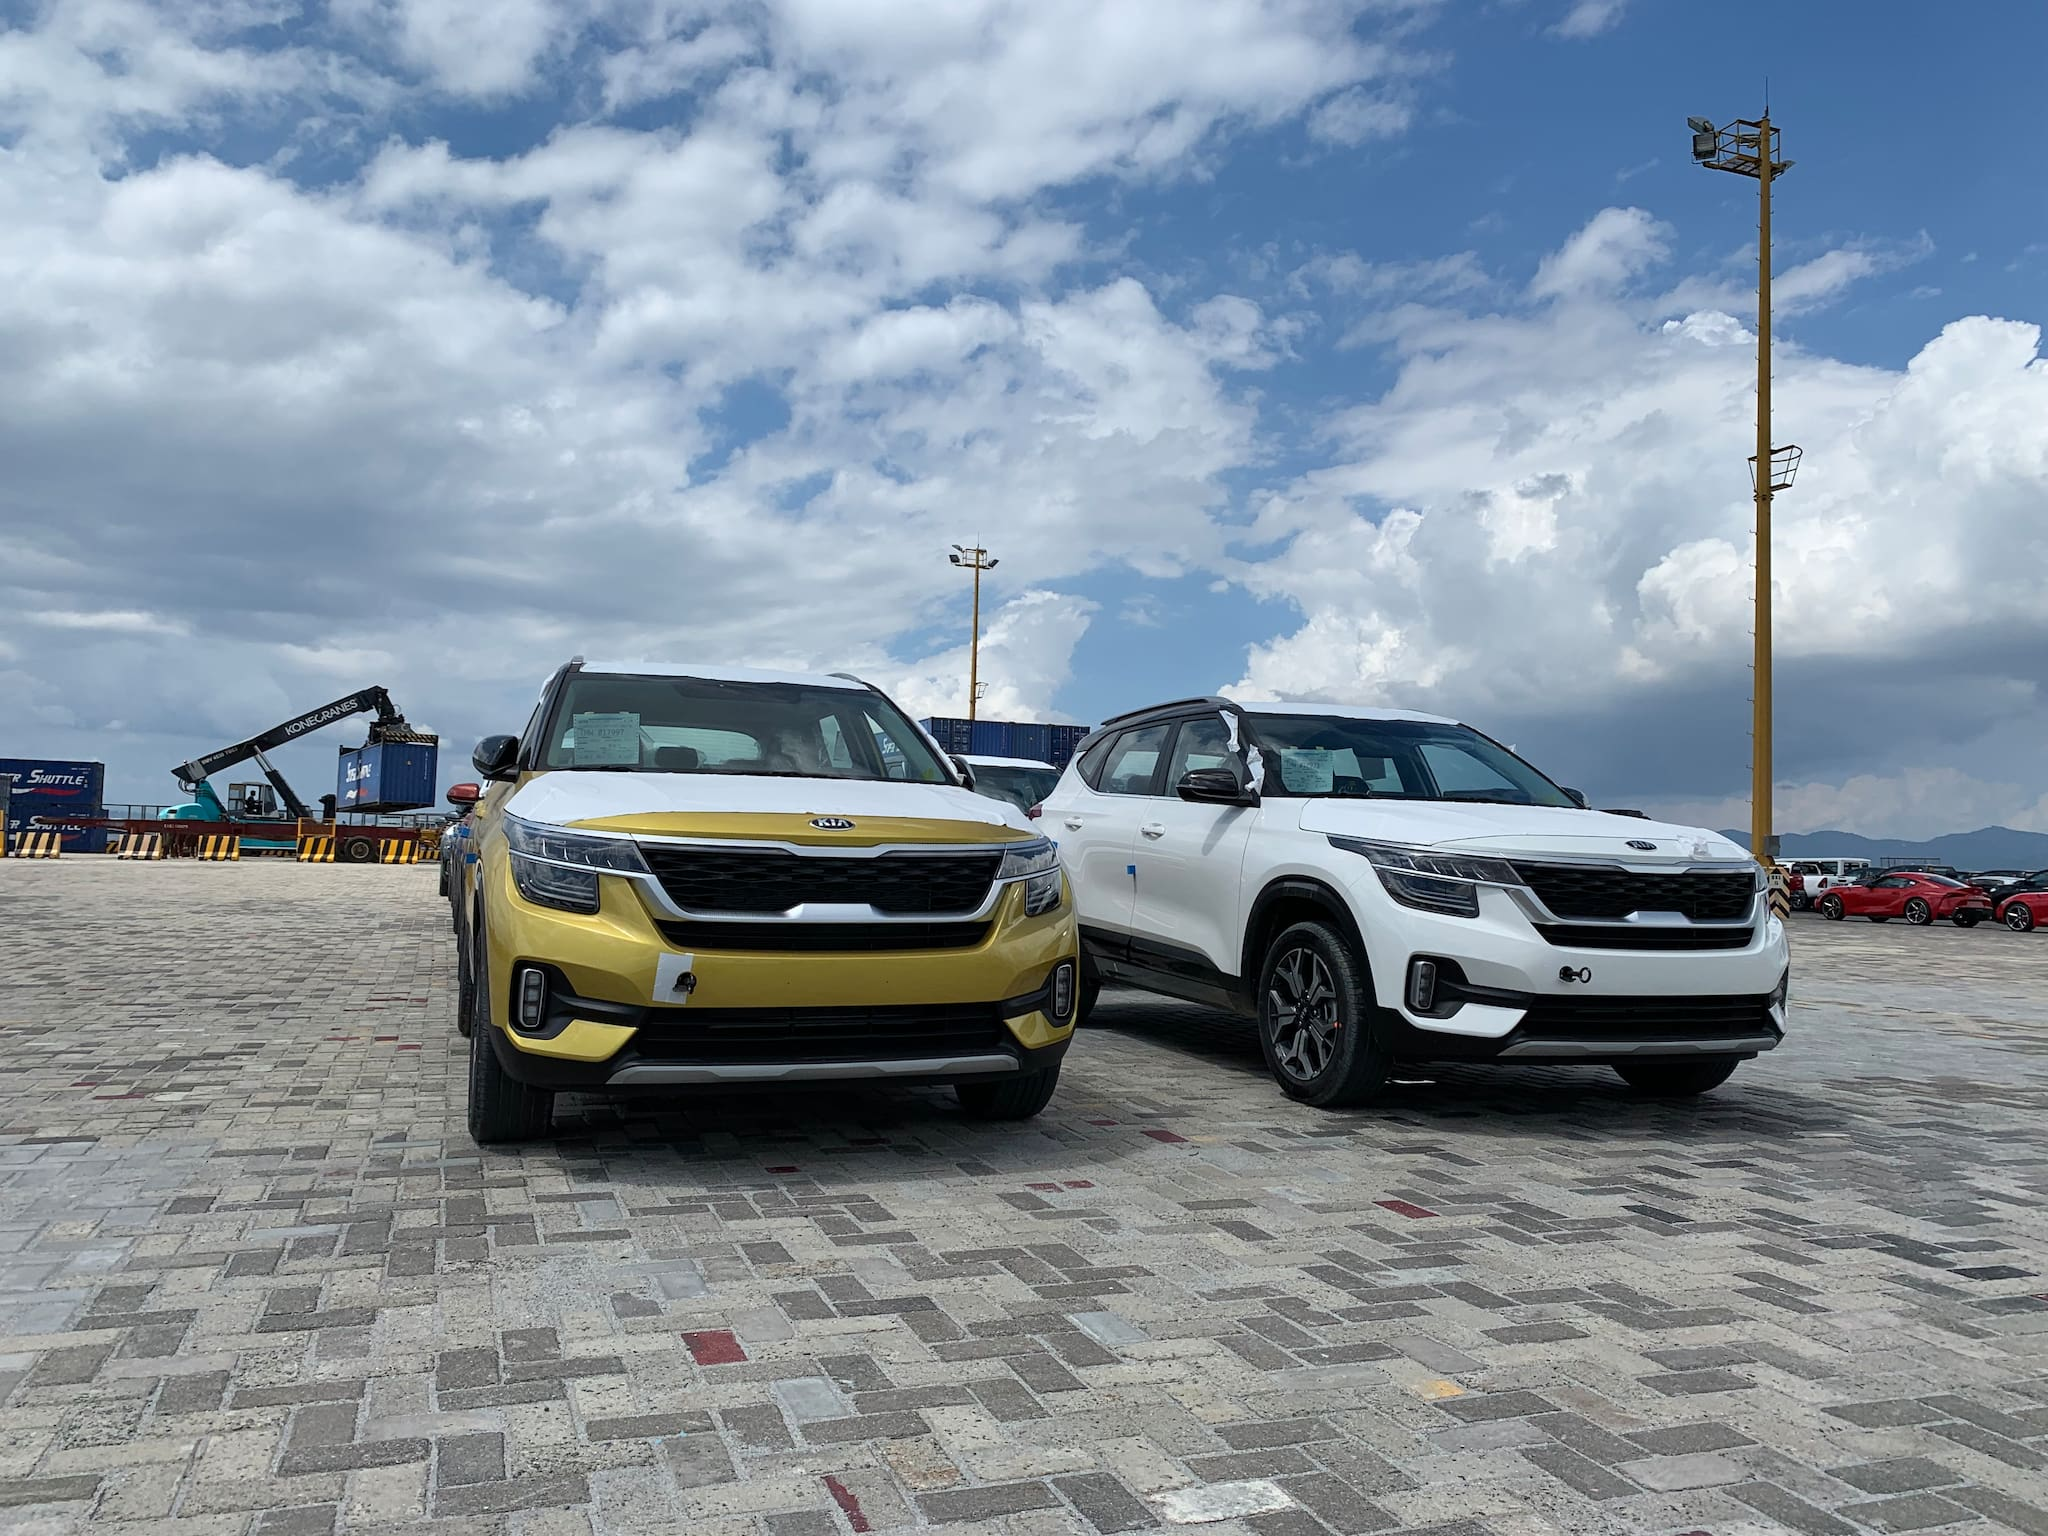 First Batch of Kia Seltos Units Now in PH